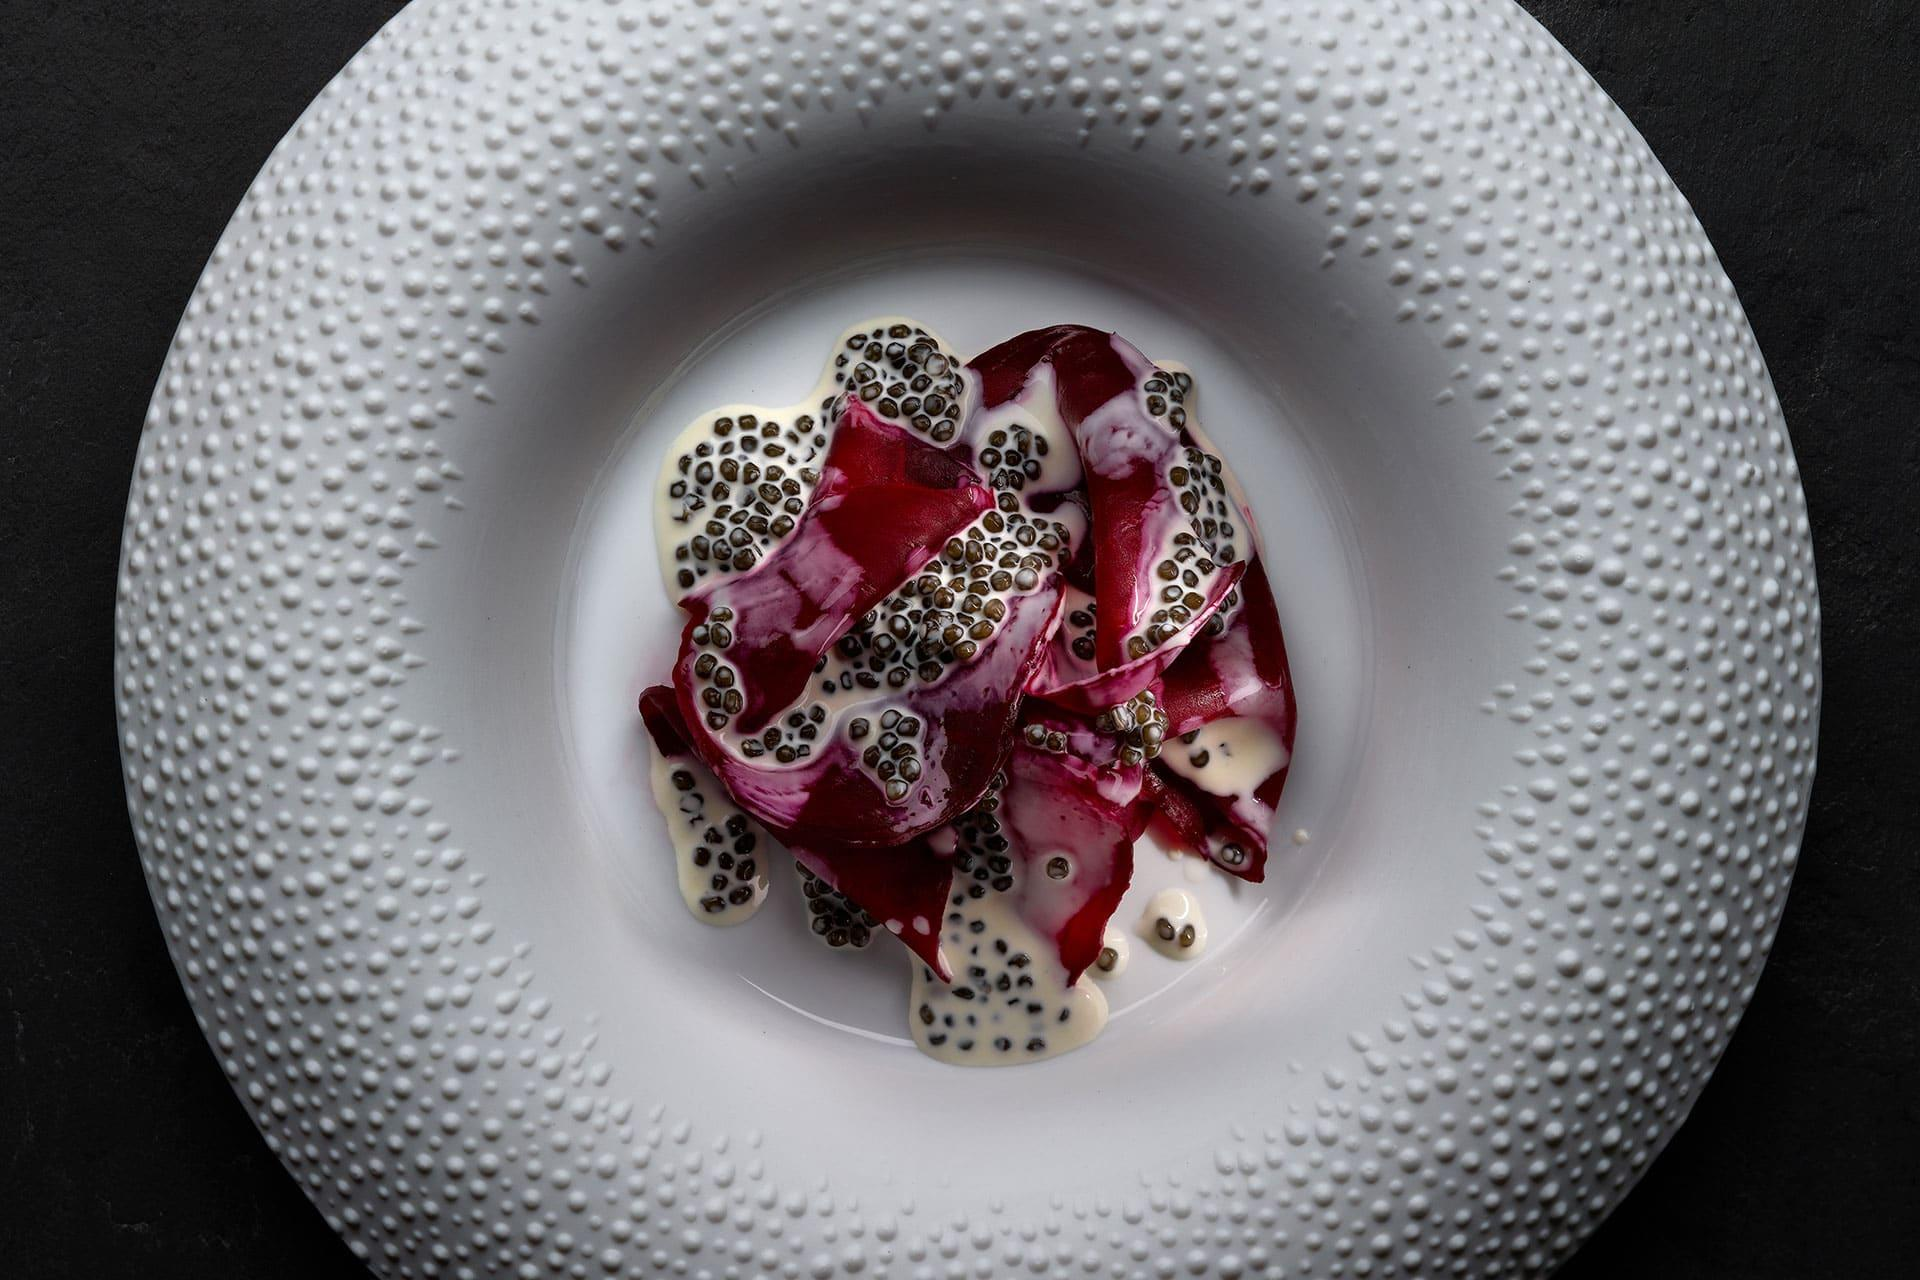 Beetroot caviar by Mauro Colagreco